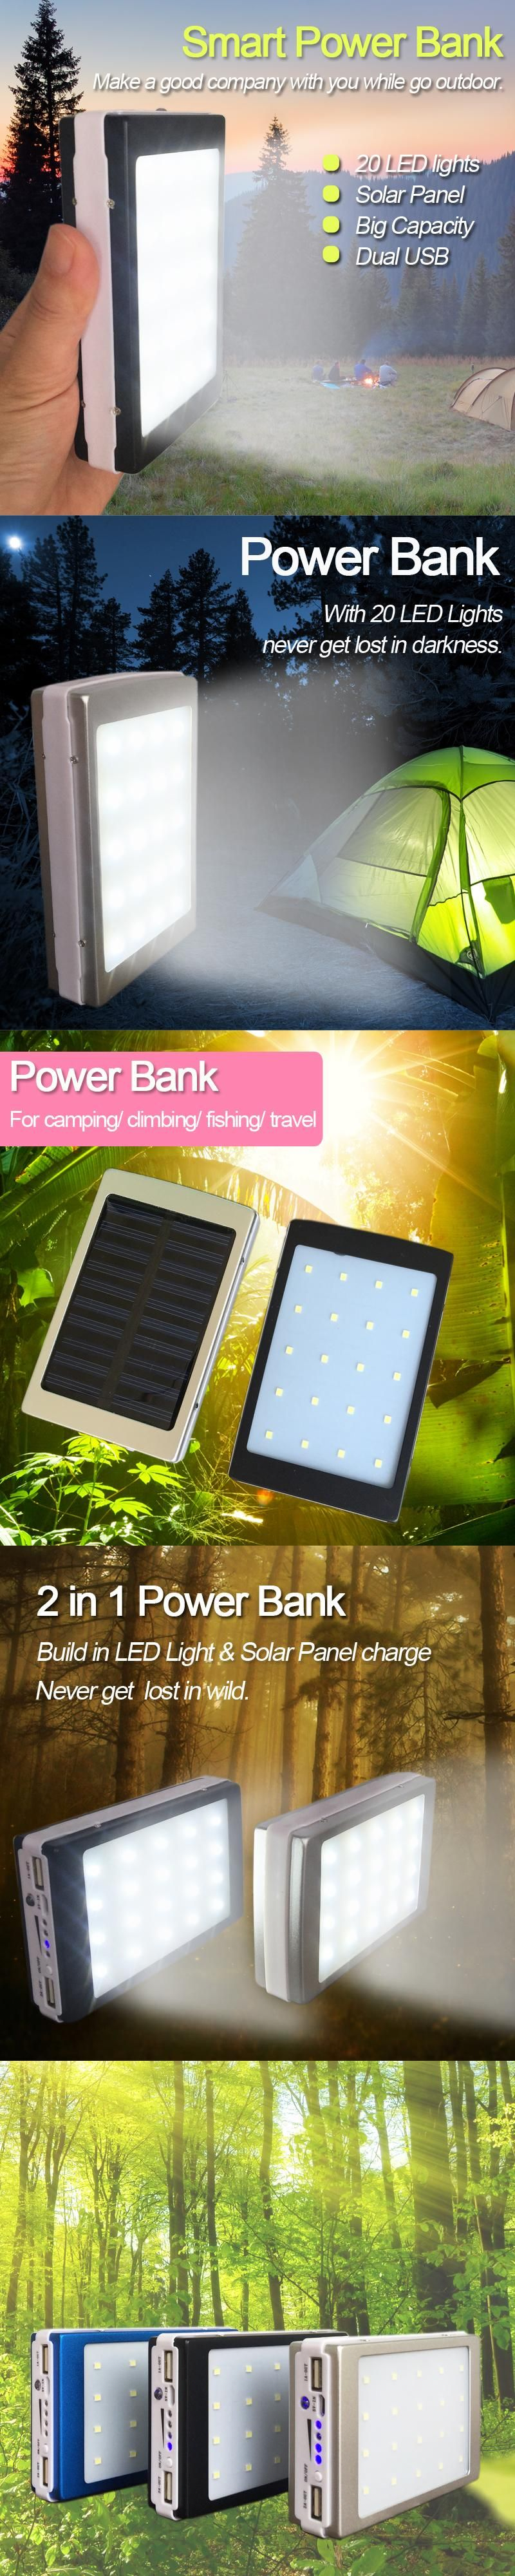 mAh Solar Power Bank with 20 LED Camp Lights External Solar Charger Power Bank for All Mobile Phones for Outdoors Camp ride